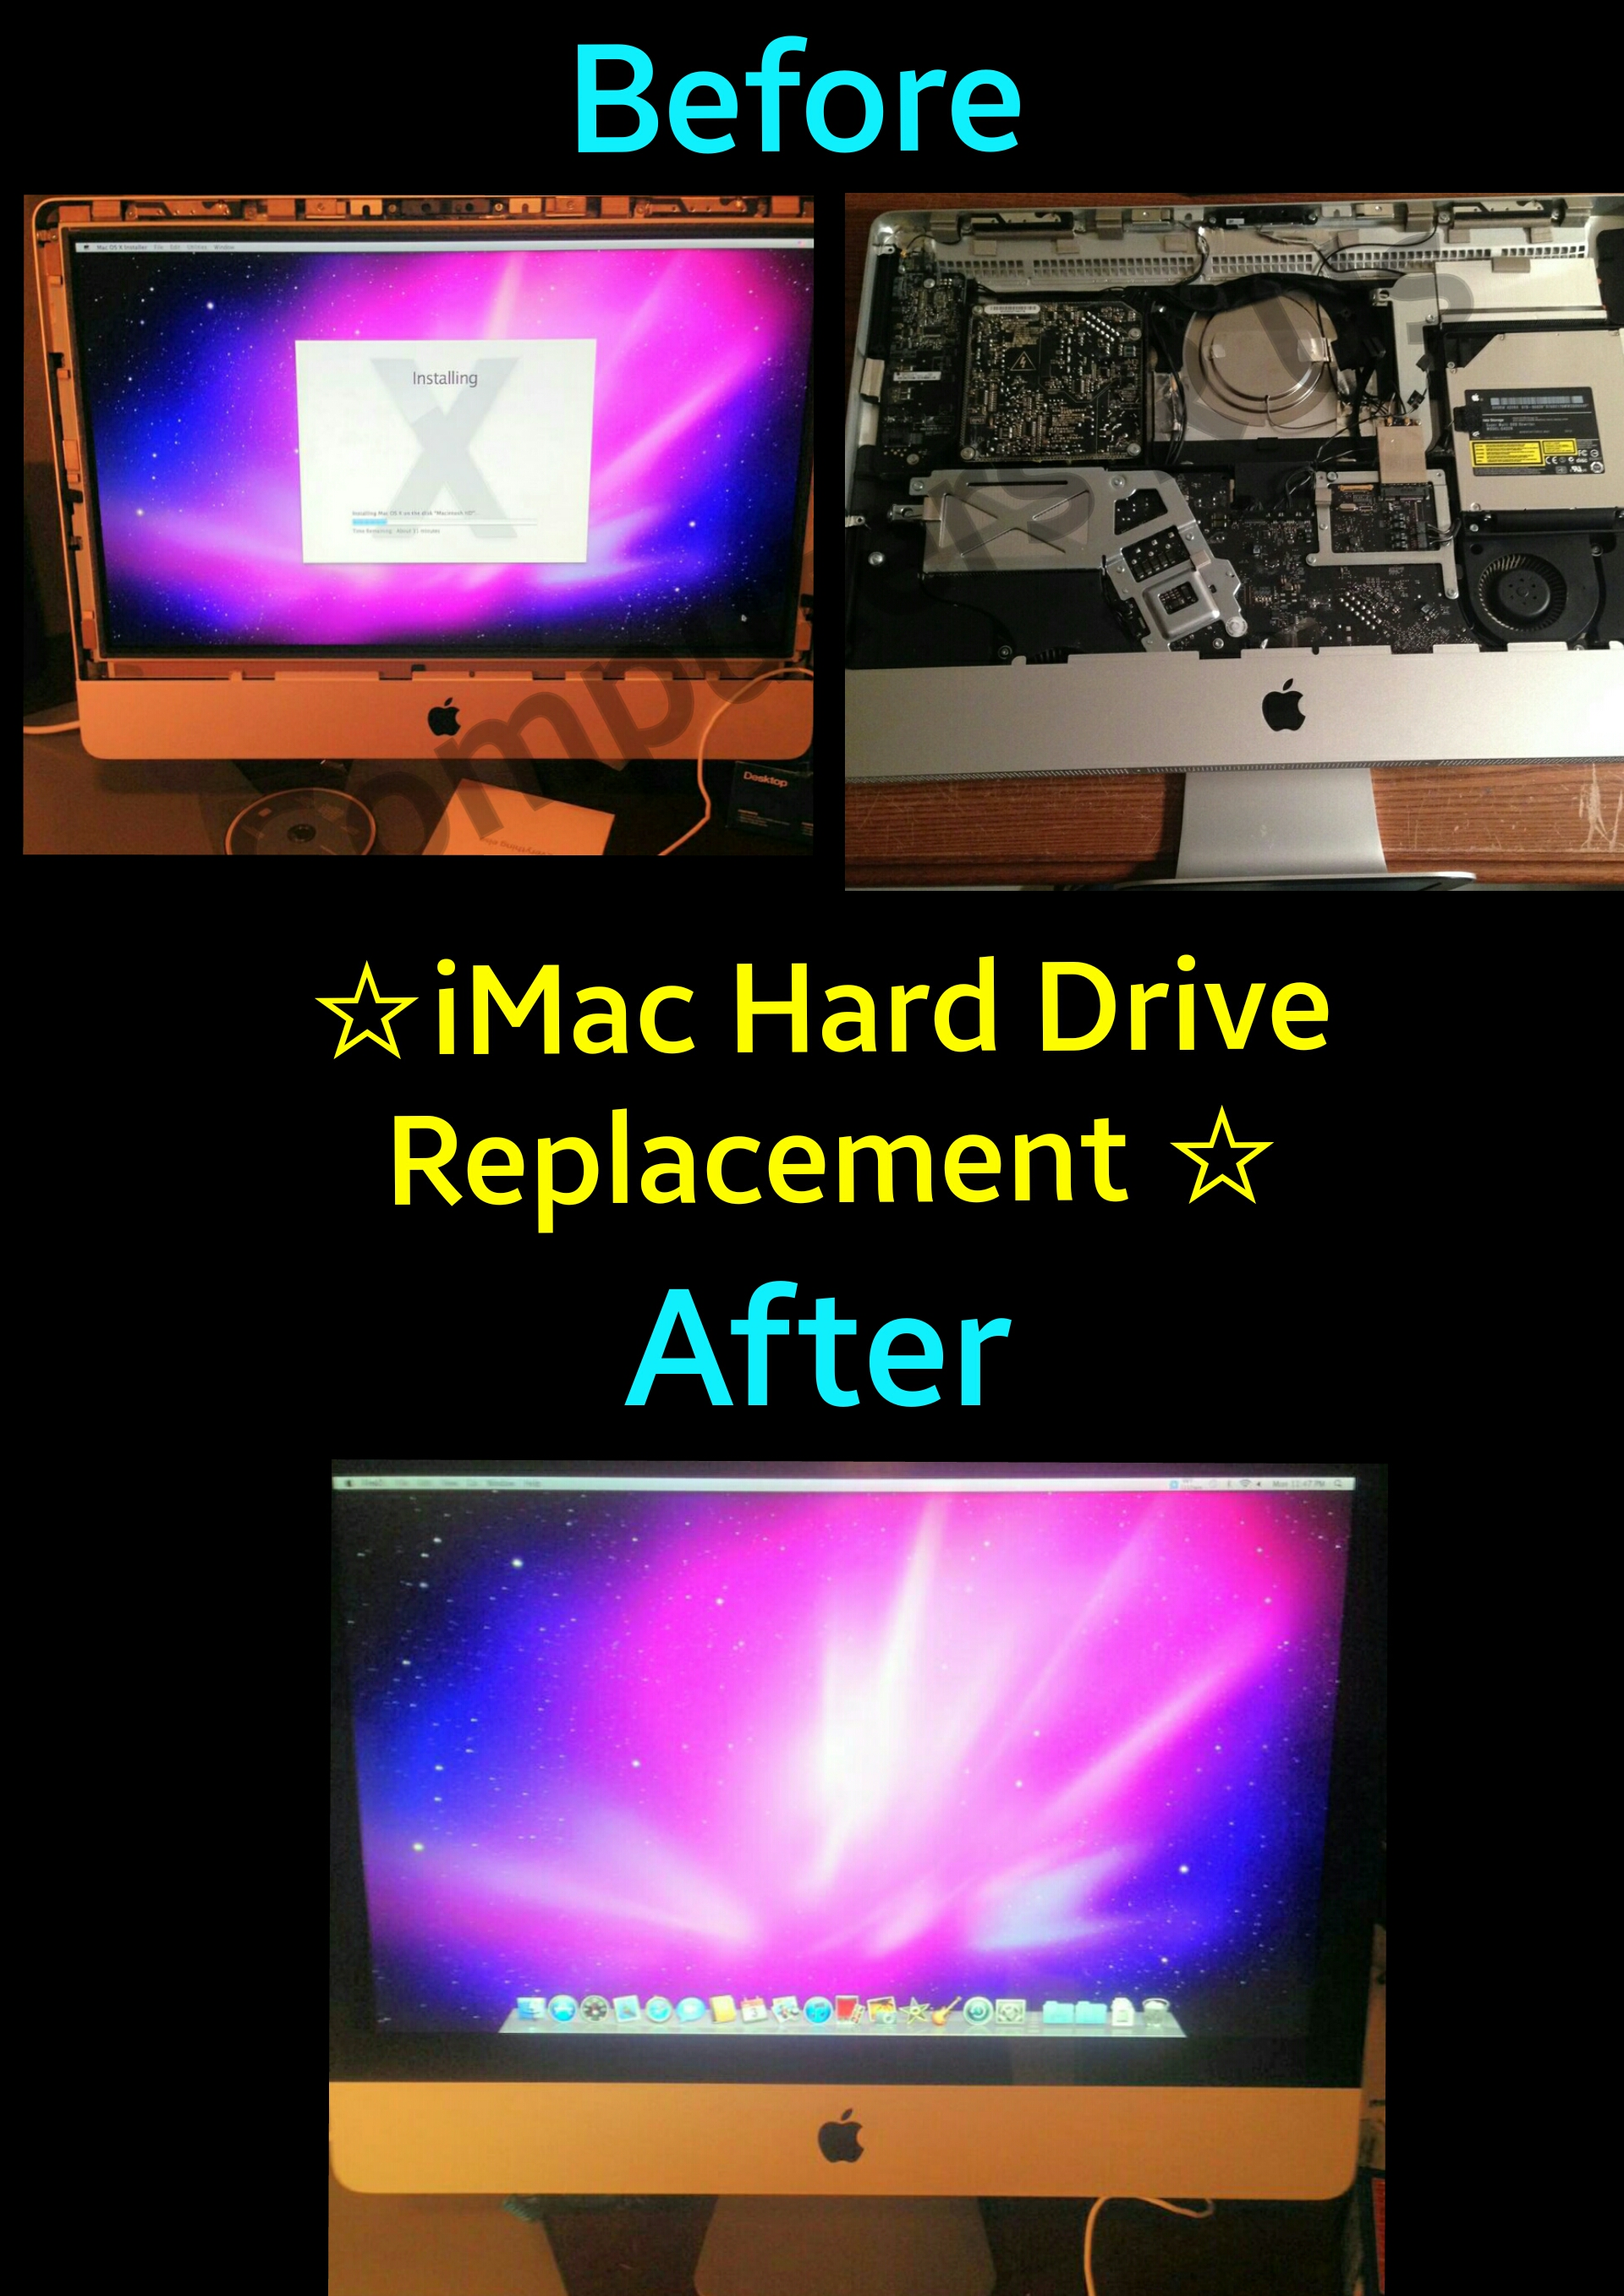 iMac Hard Drive Replacement - Before/After